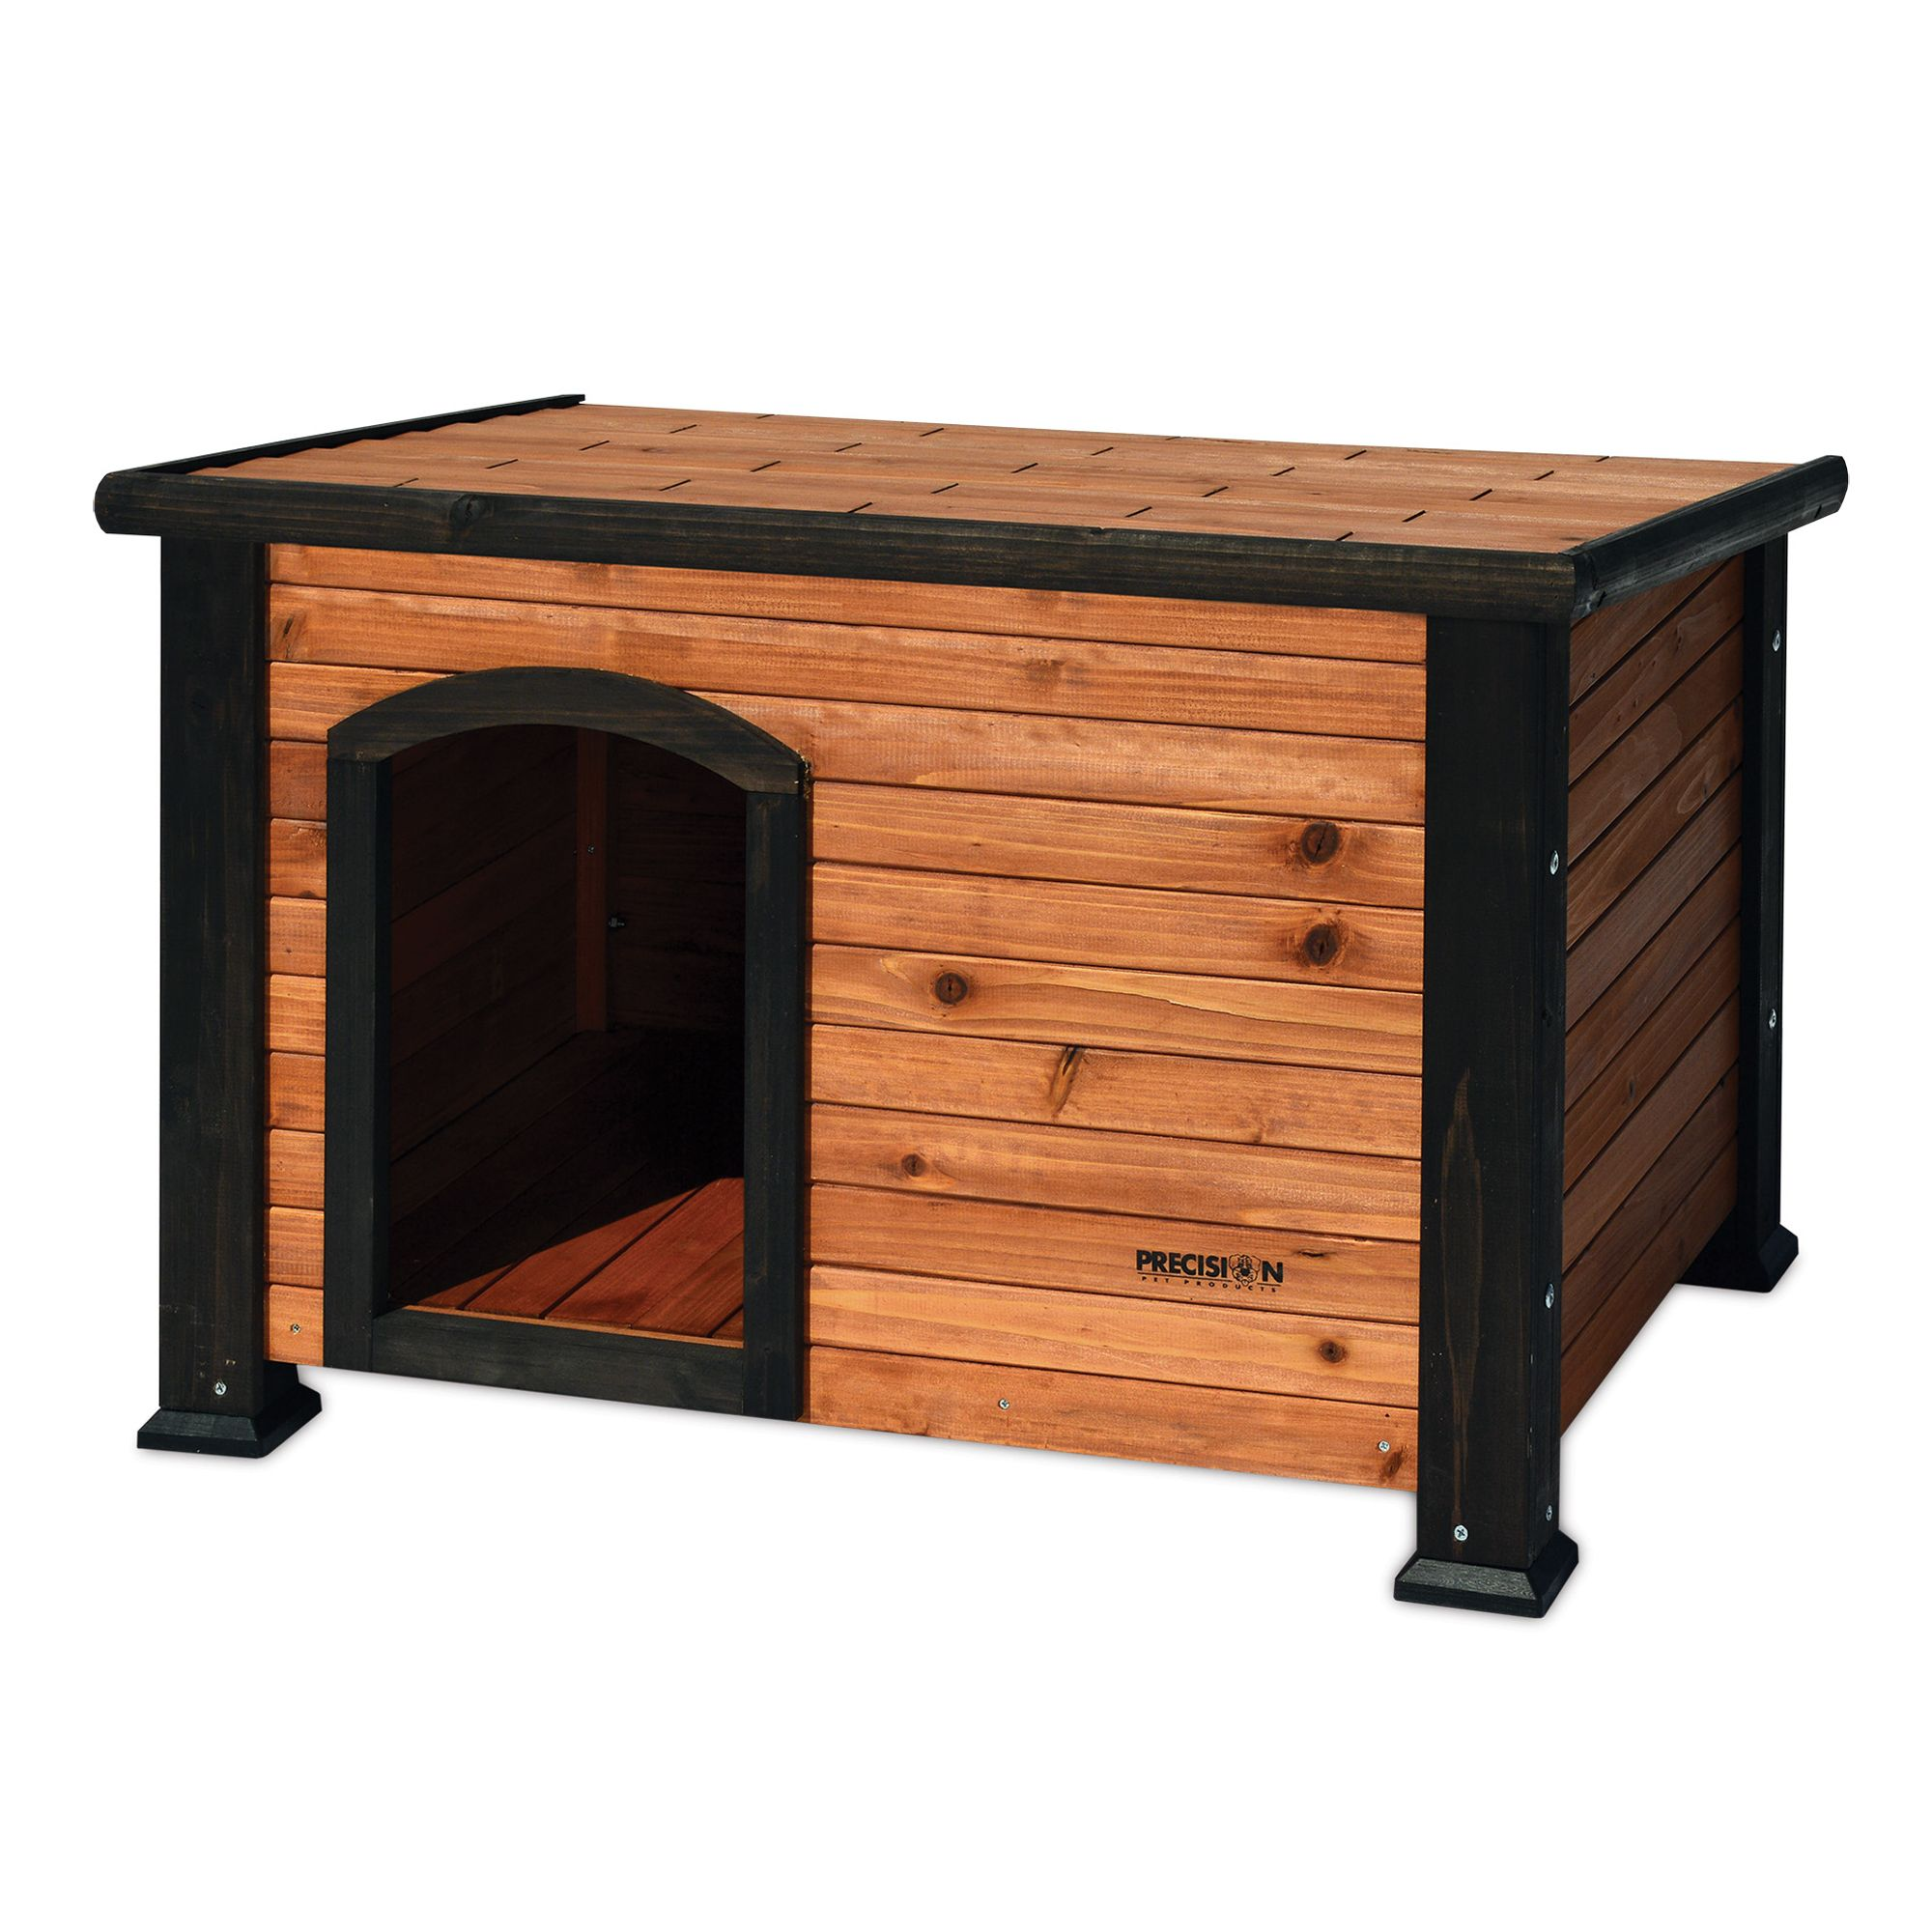 "Precision Pet Outback Log Cabin Dog House size: 45.5""L x 33""W x 33""H, Brown 5083107"